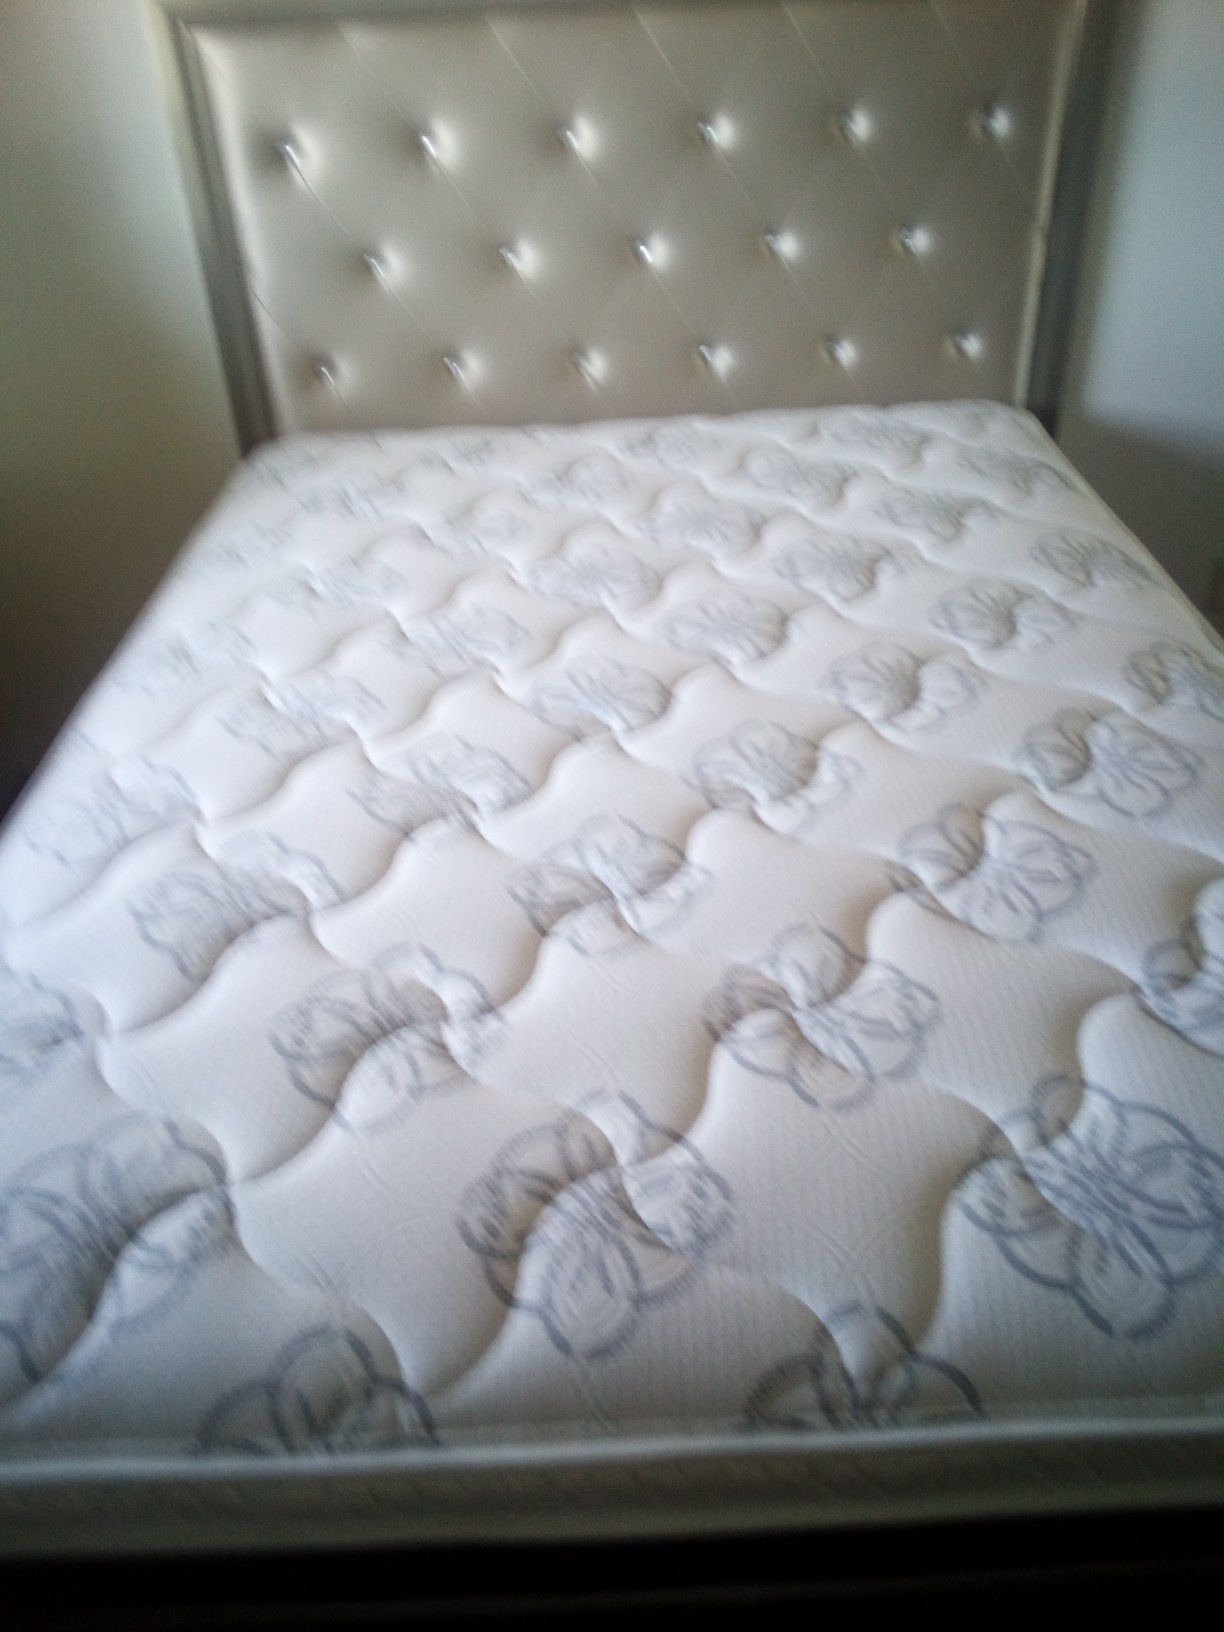 NuevoNew$315 Queen Size Matress and bedframe